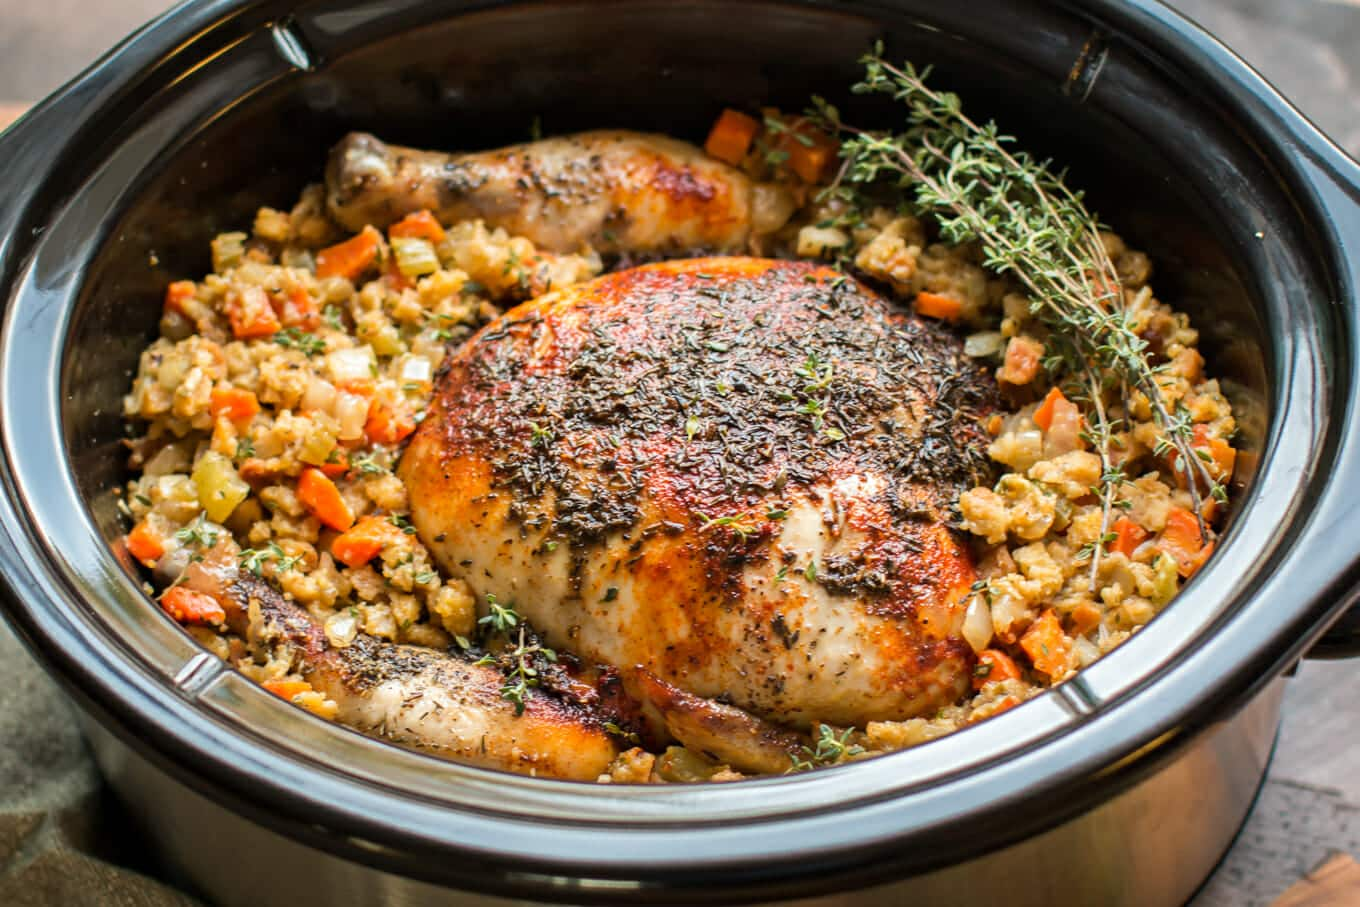 Slow Cooker Whole Chicken with Stuffing